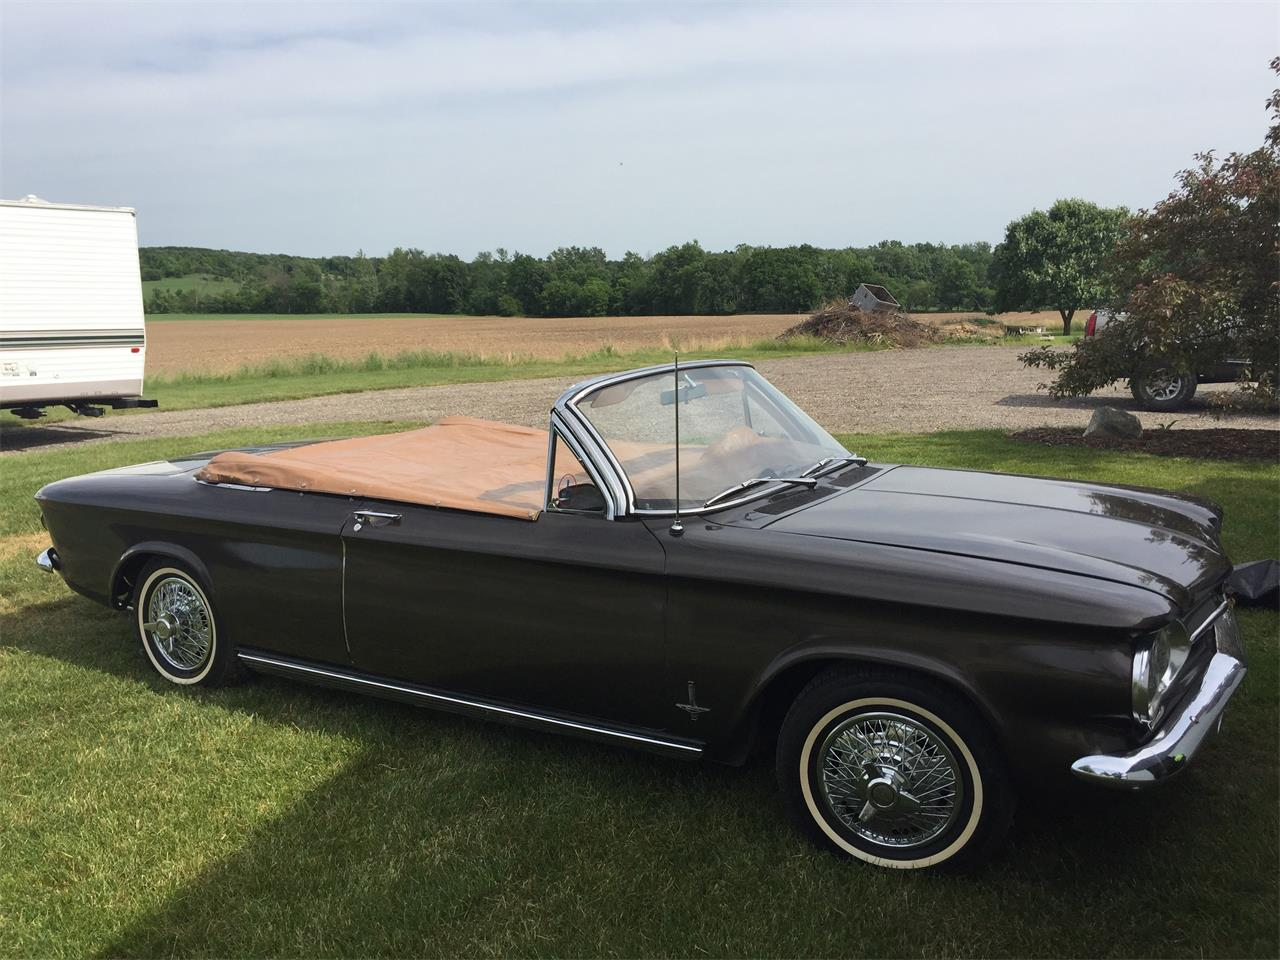 Large Picture of '63 Chevrolet Corvair Monza located in Michigan - $11,500.00 Offered by a Private Seller - NNDG